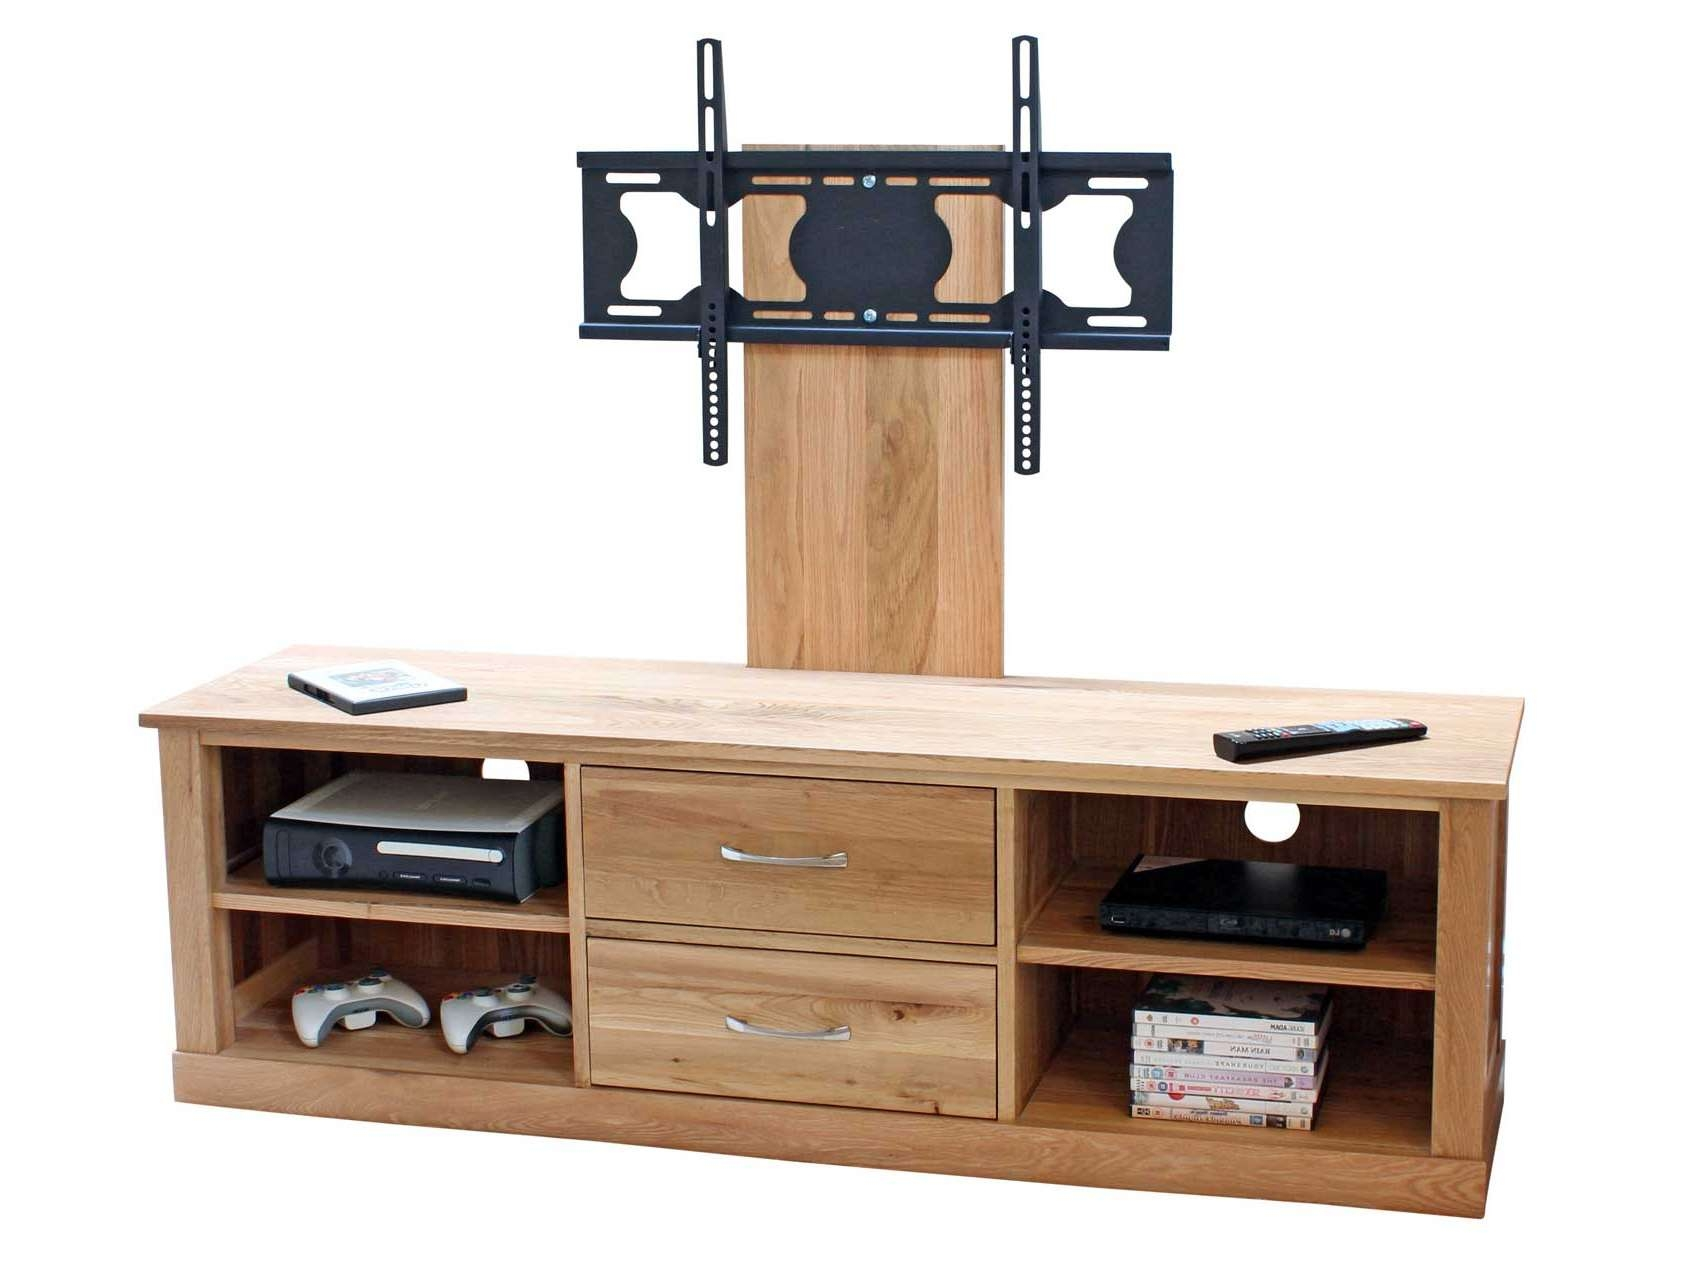 Oak Wooden Tv Stand With Mount For Flat Screen Of 14 Gorgeous In Corner Oak Tv Stands For Flat Screen (Gallery 3 of 15)